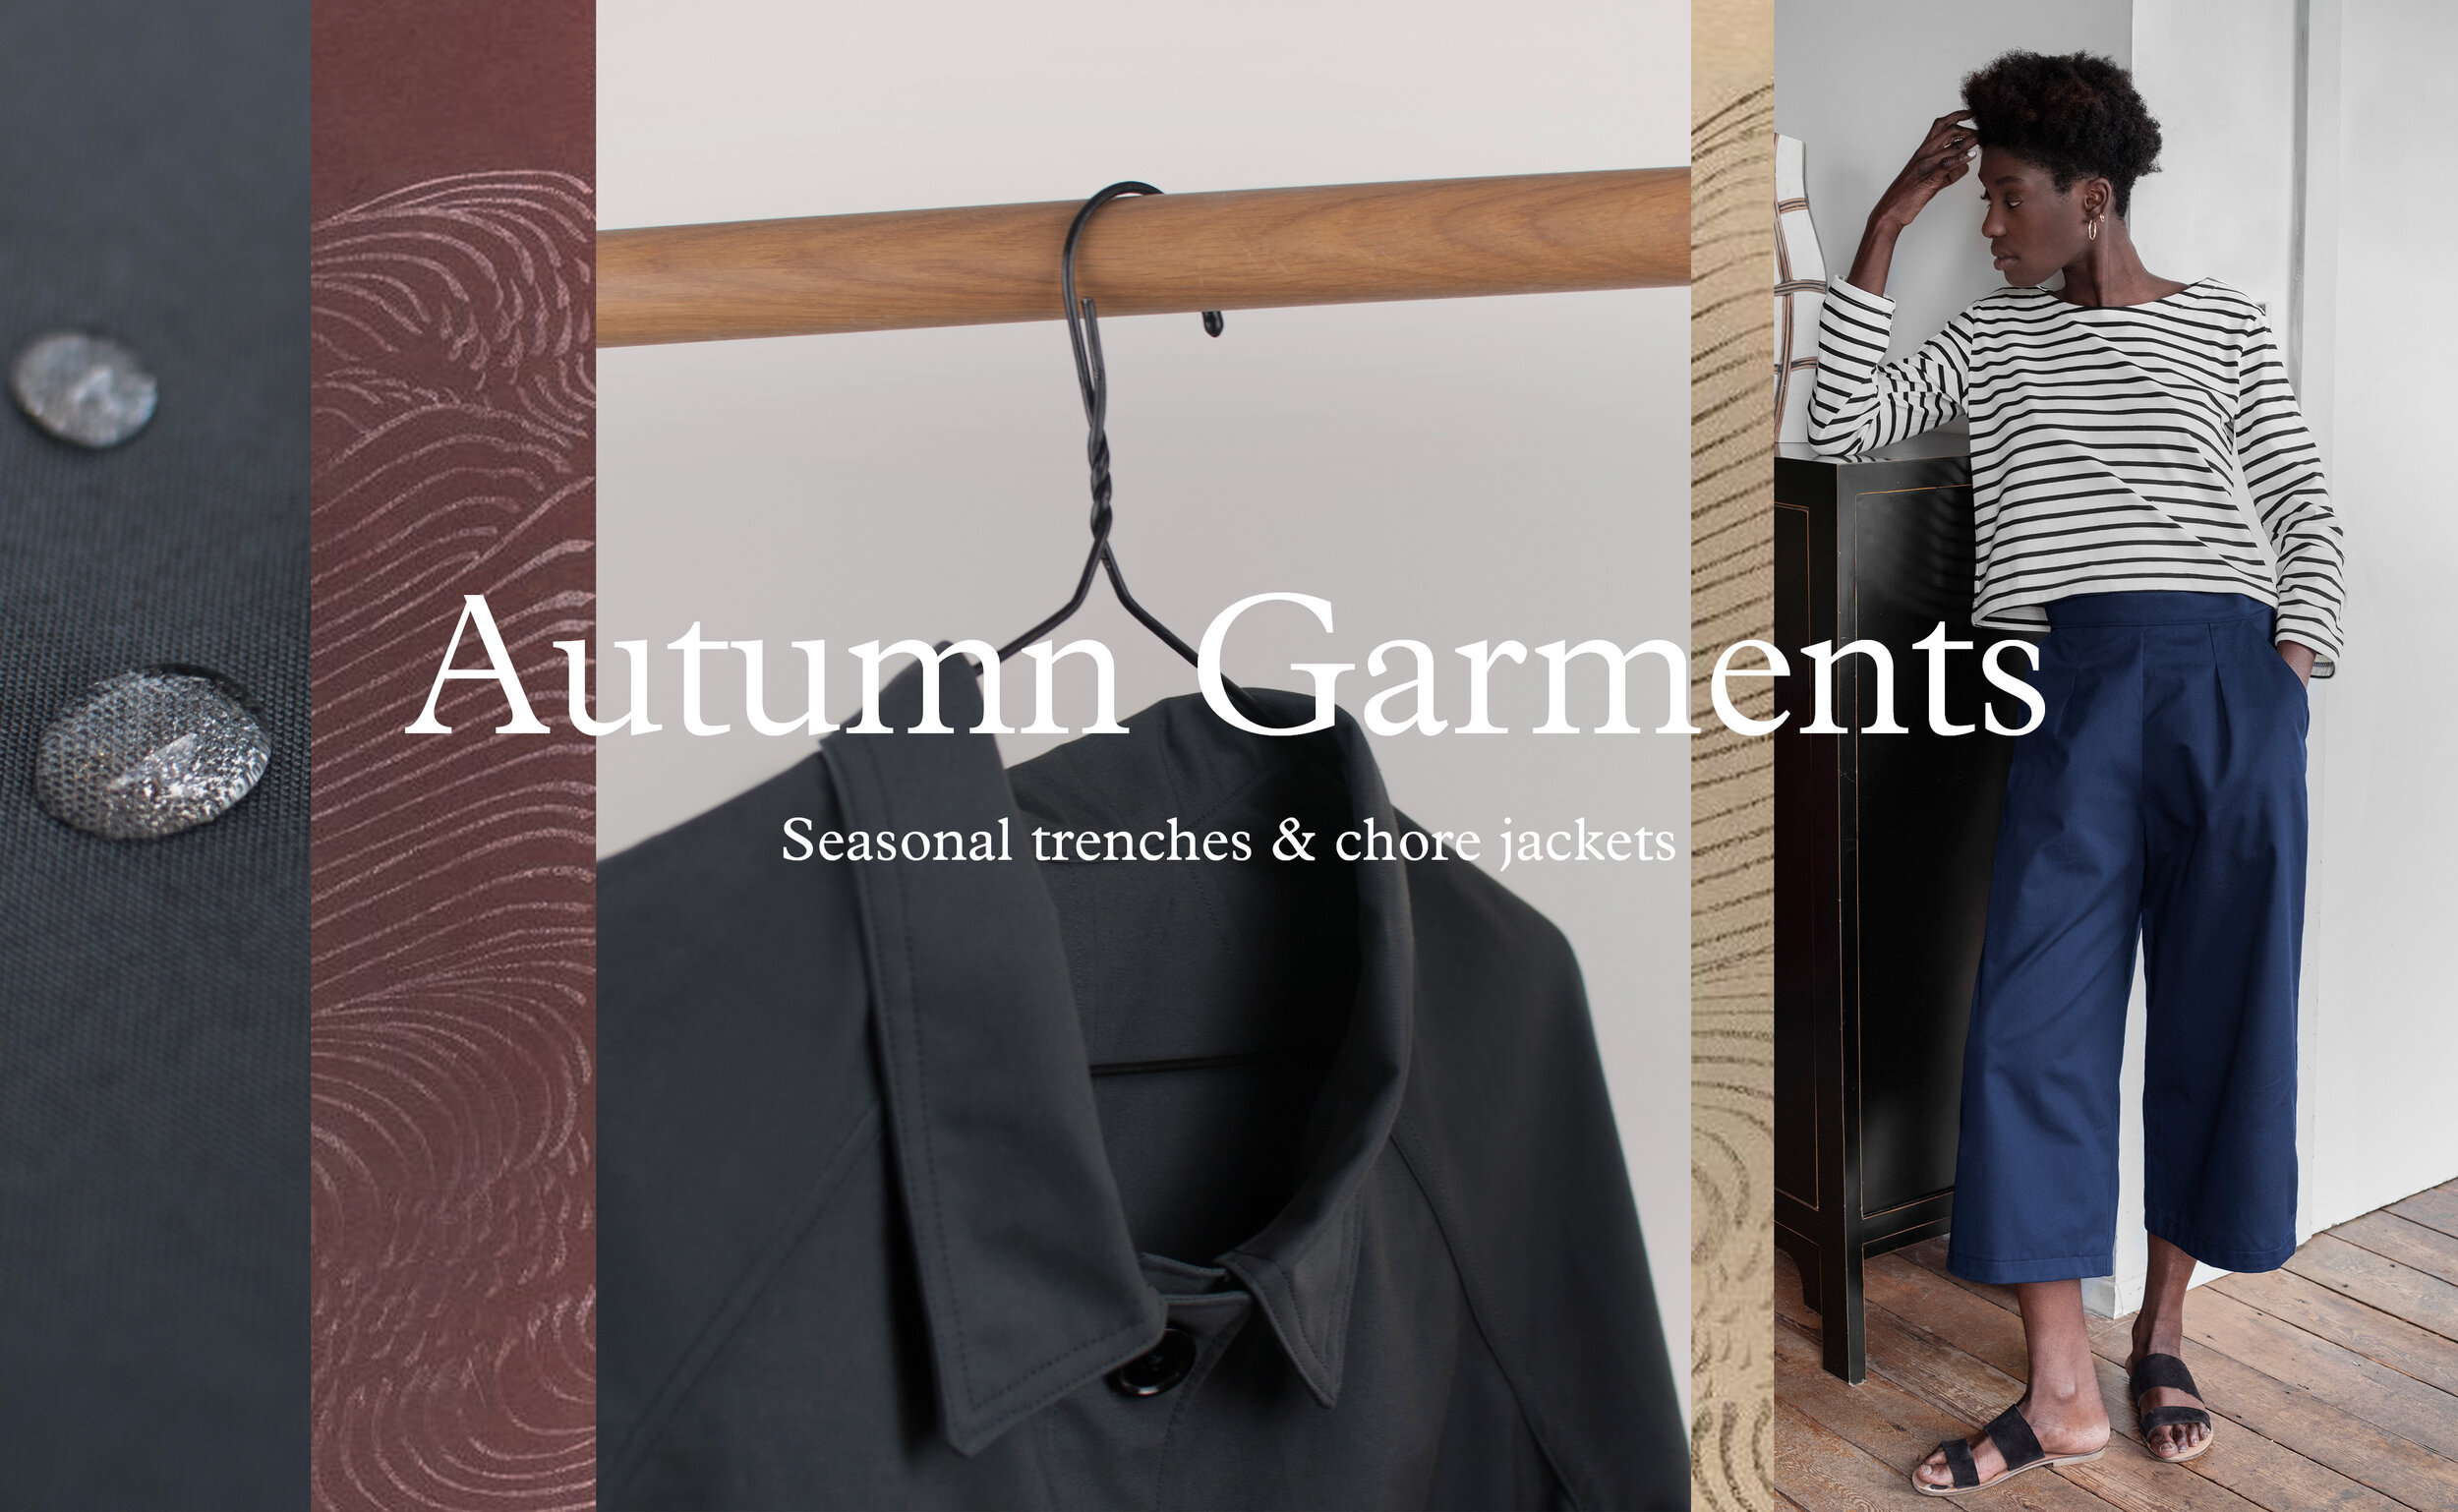 Autumn Garments.jpg